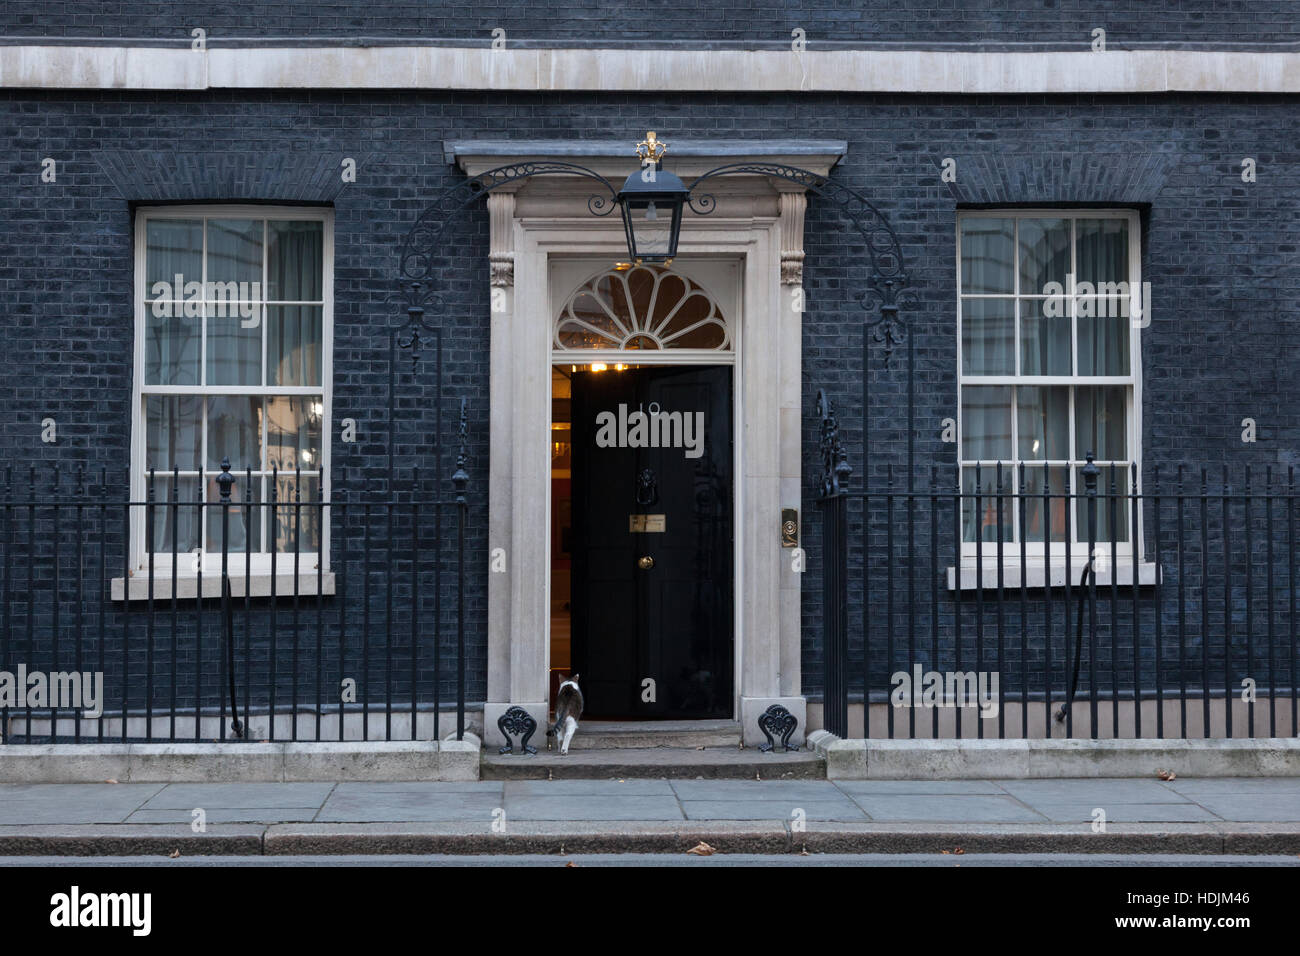 London, 28 November 2016. Main doors are kept closed at 10 Downing Street in London, the residence of Prime Minister - Stock Image